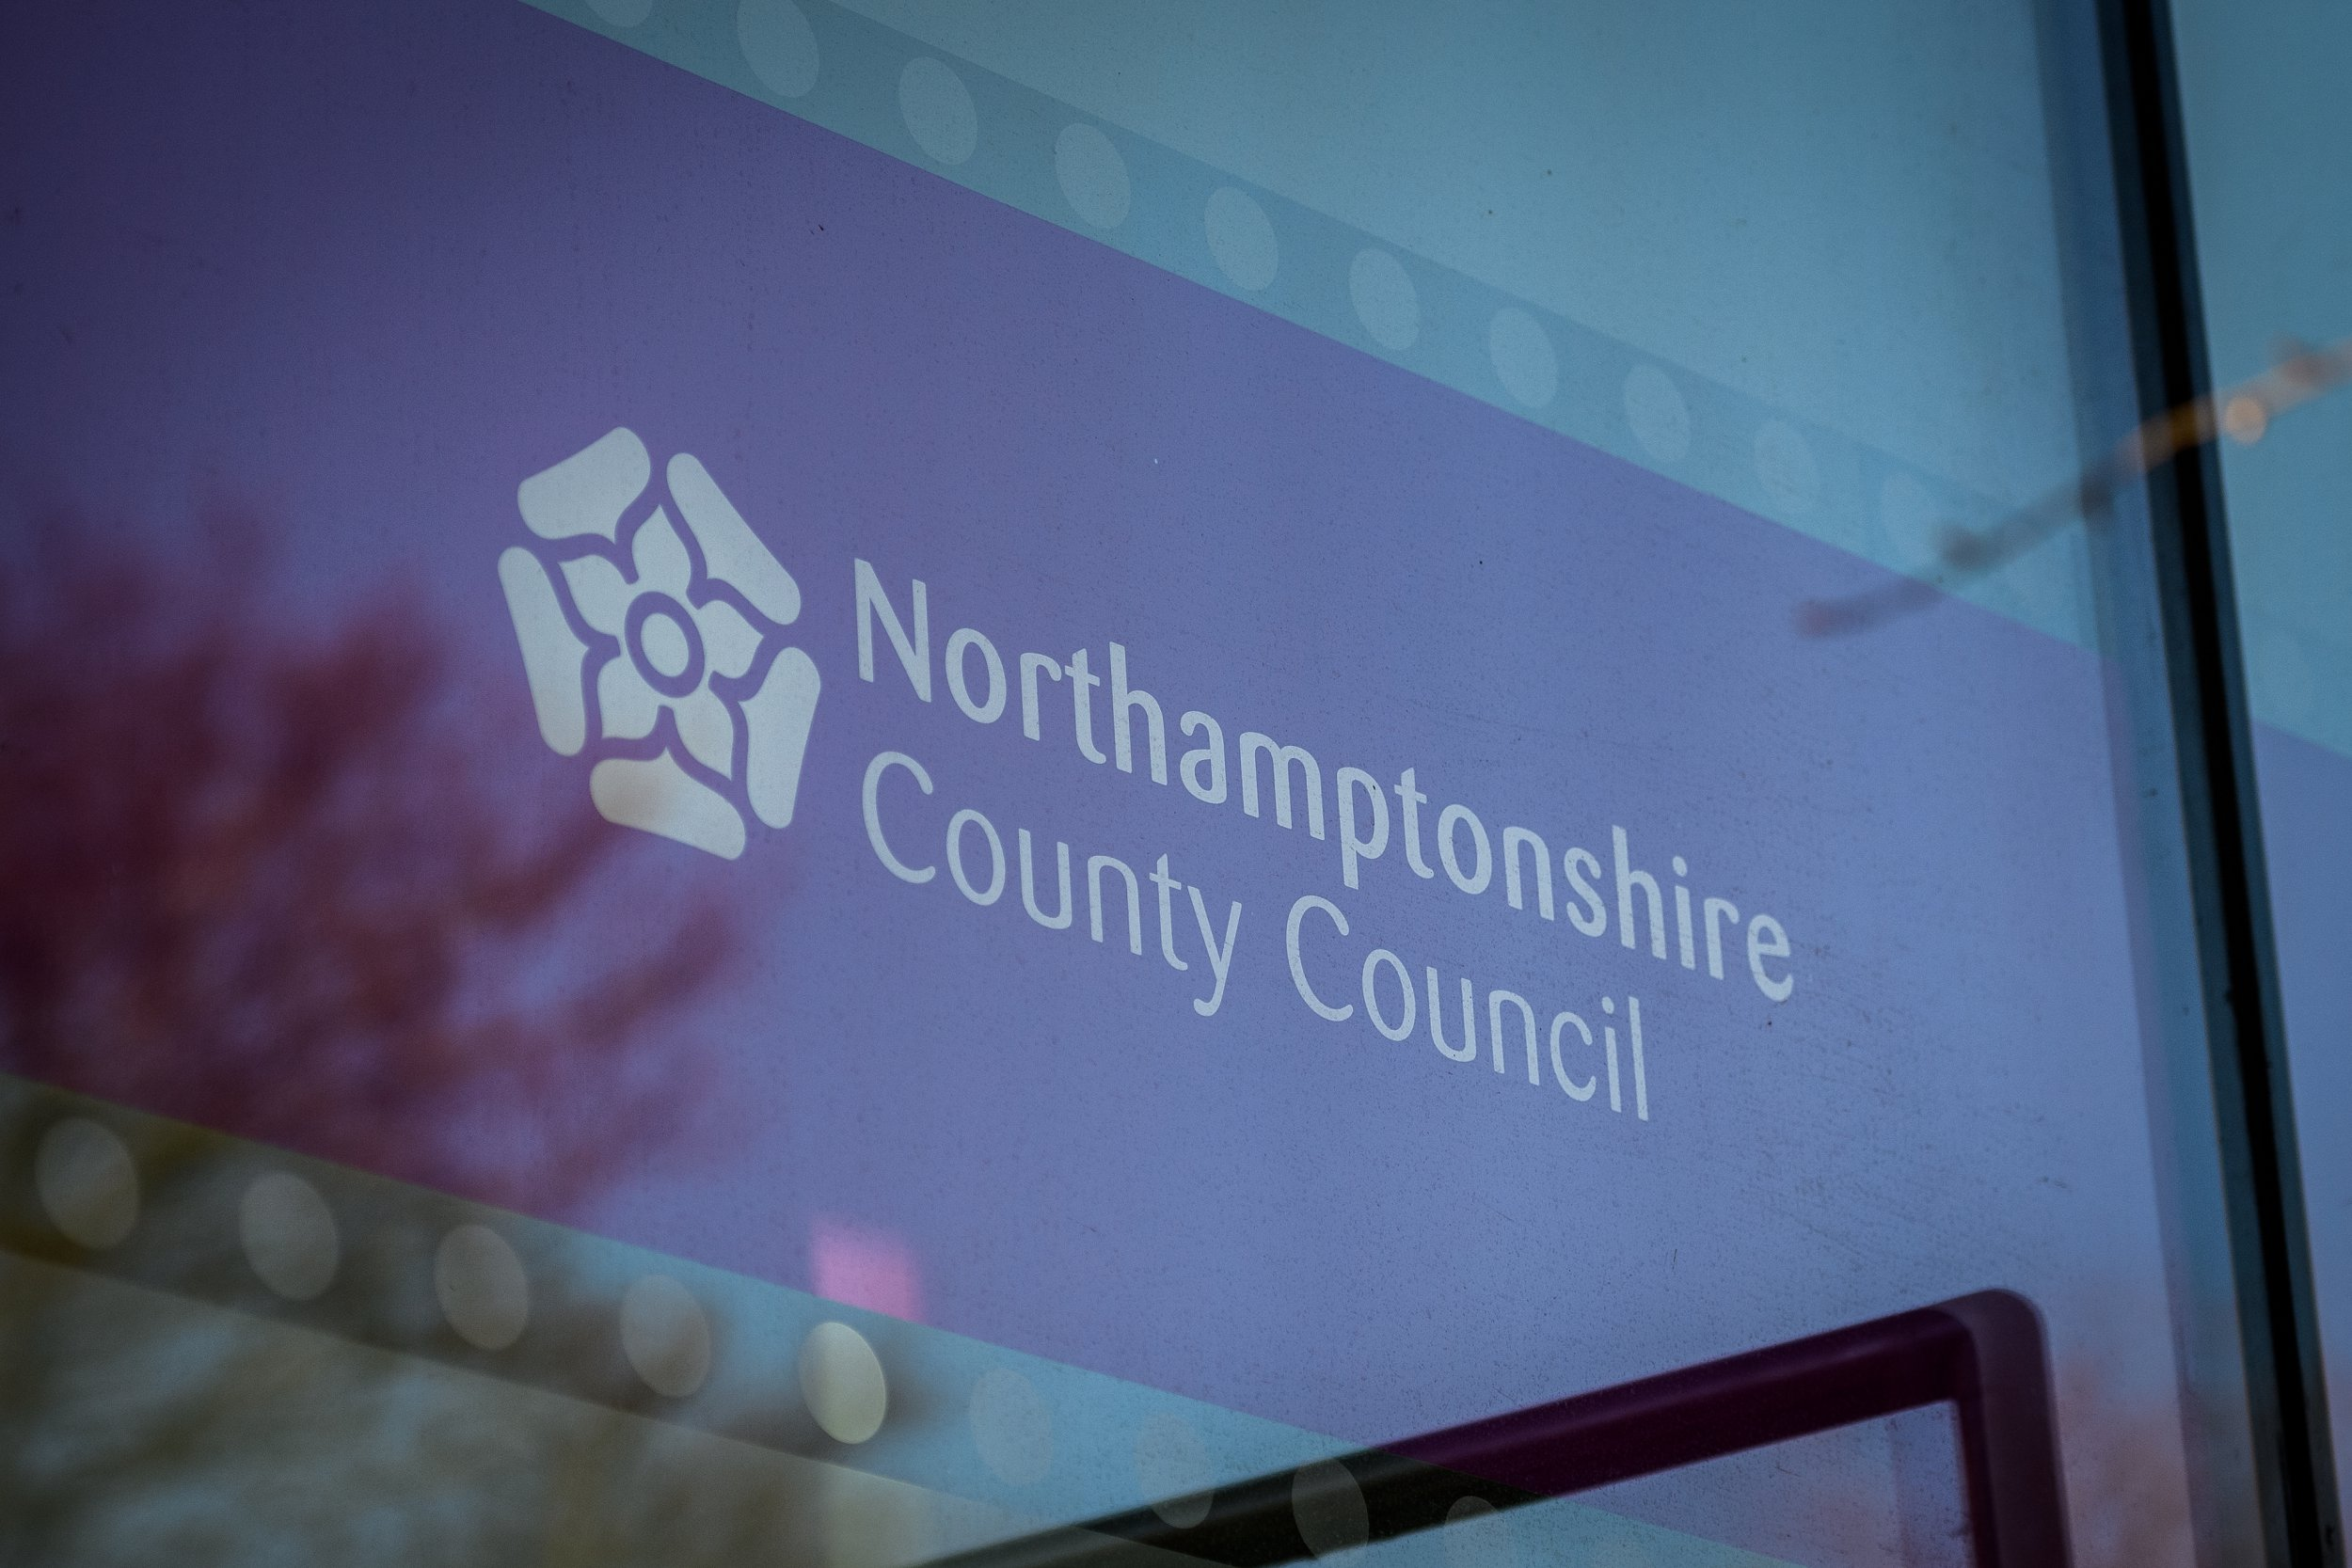 NORTHAMPTON, UNITED KINGDOM - FEBRUARY 15: The Northamptonshire County Council logo is seen in the window of the new One Angel Square office block near the town centre on February 15, 2018 in Northampton, United Kingdom. Northamptonshire County Council has banned all new spending after announcing an overspend of ??21m for the 2017-18 period. As it attempts to pay off ??150m of loans, the council is looking at selling it's new ??53m headquarters at One Angel Square, which was only opened in October 2017. (Photo by Leon Neal/Getty Images)